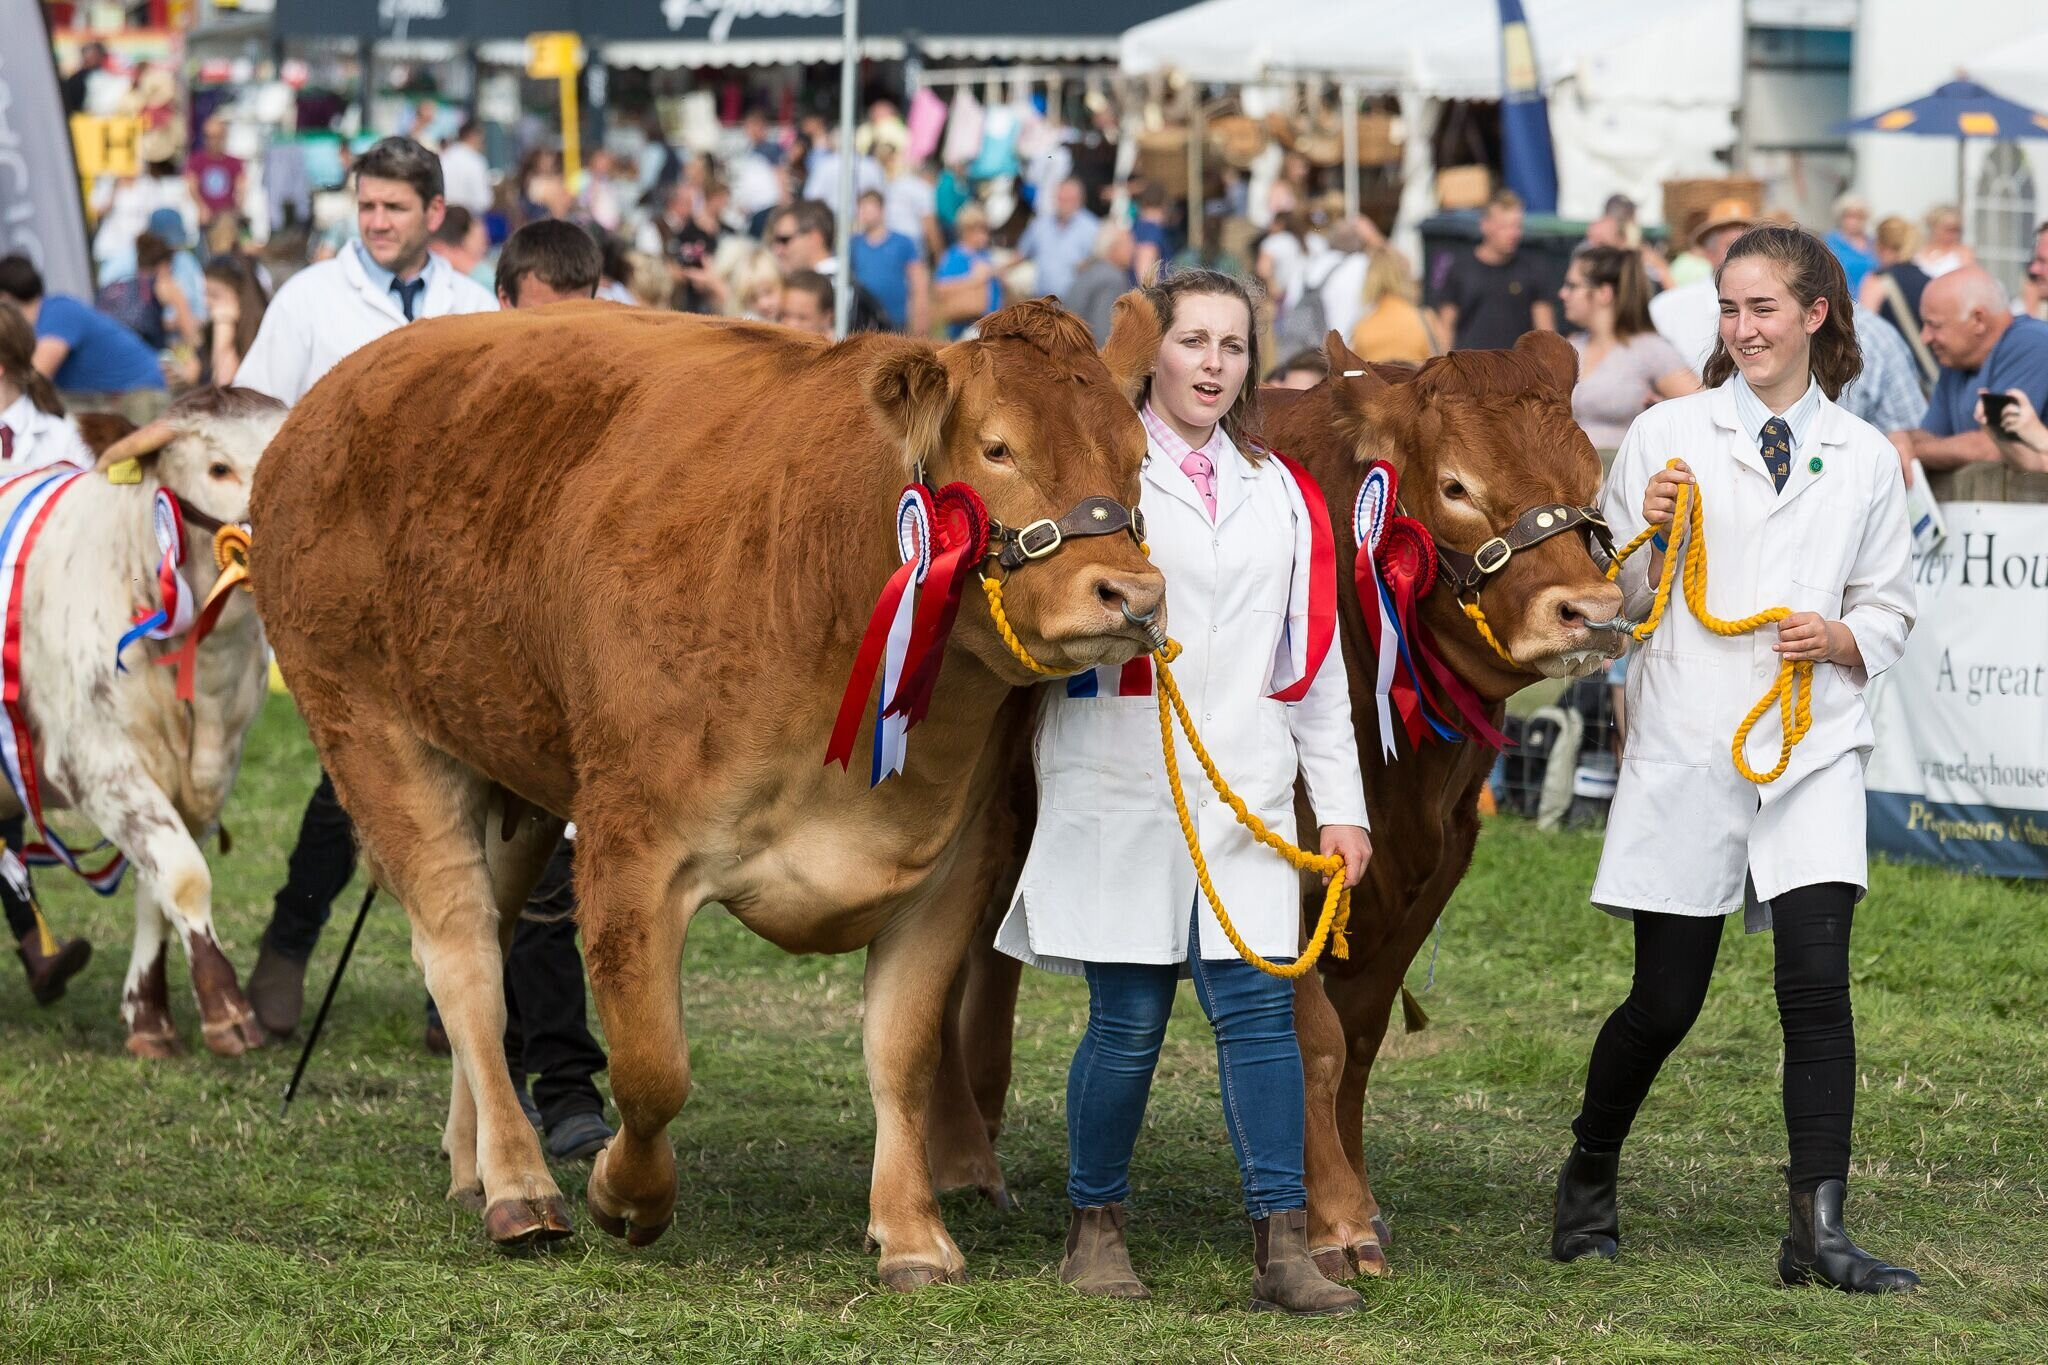 Award-winning cows at the Dorset County Show